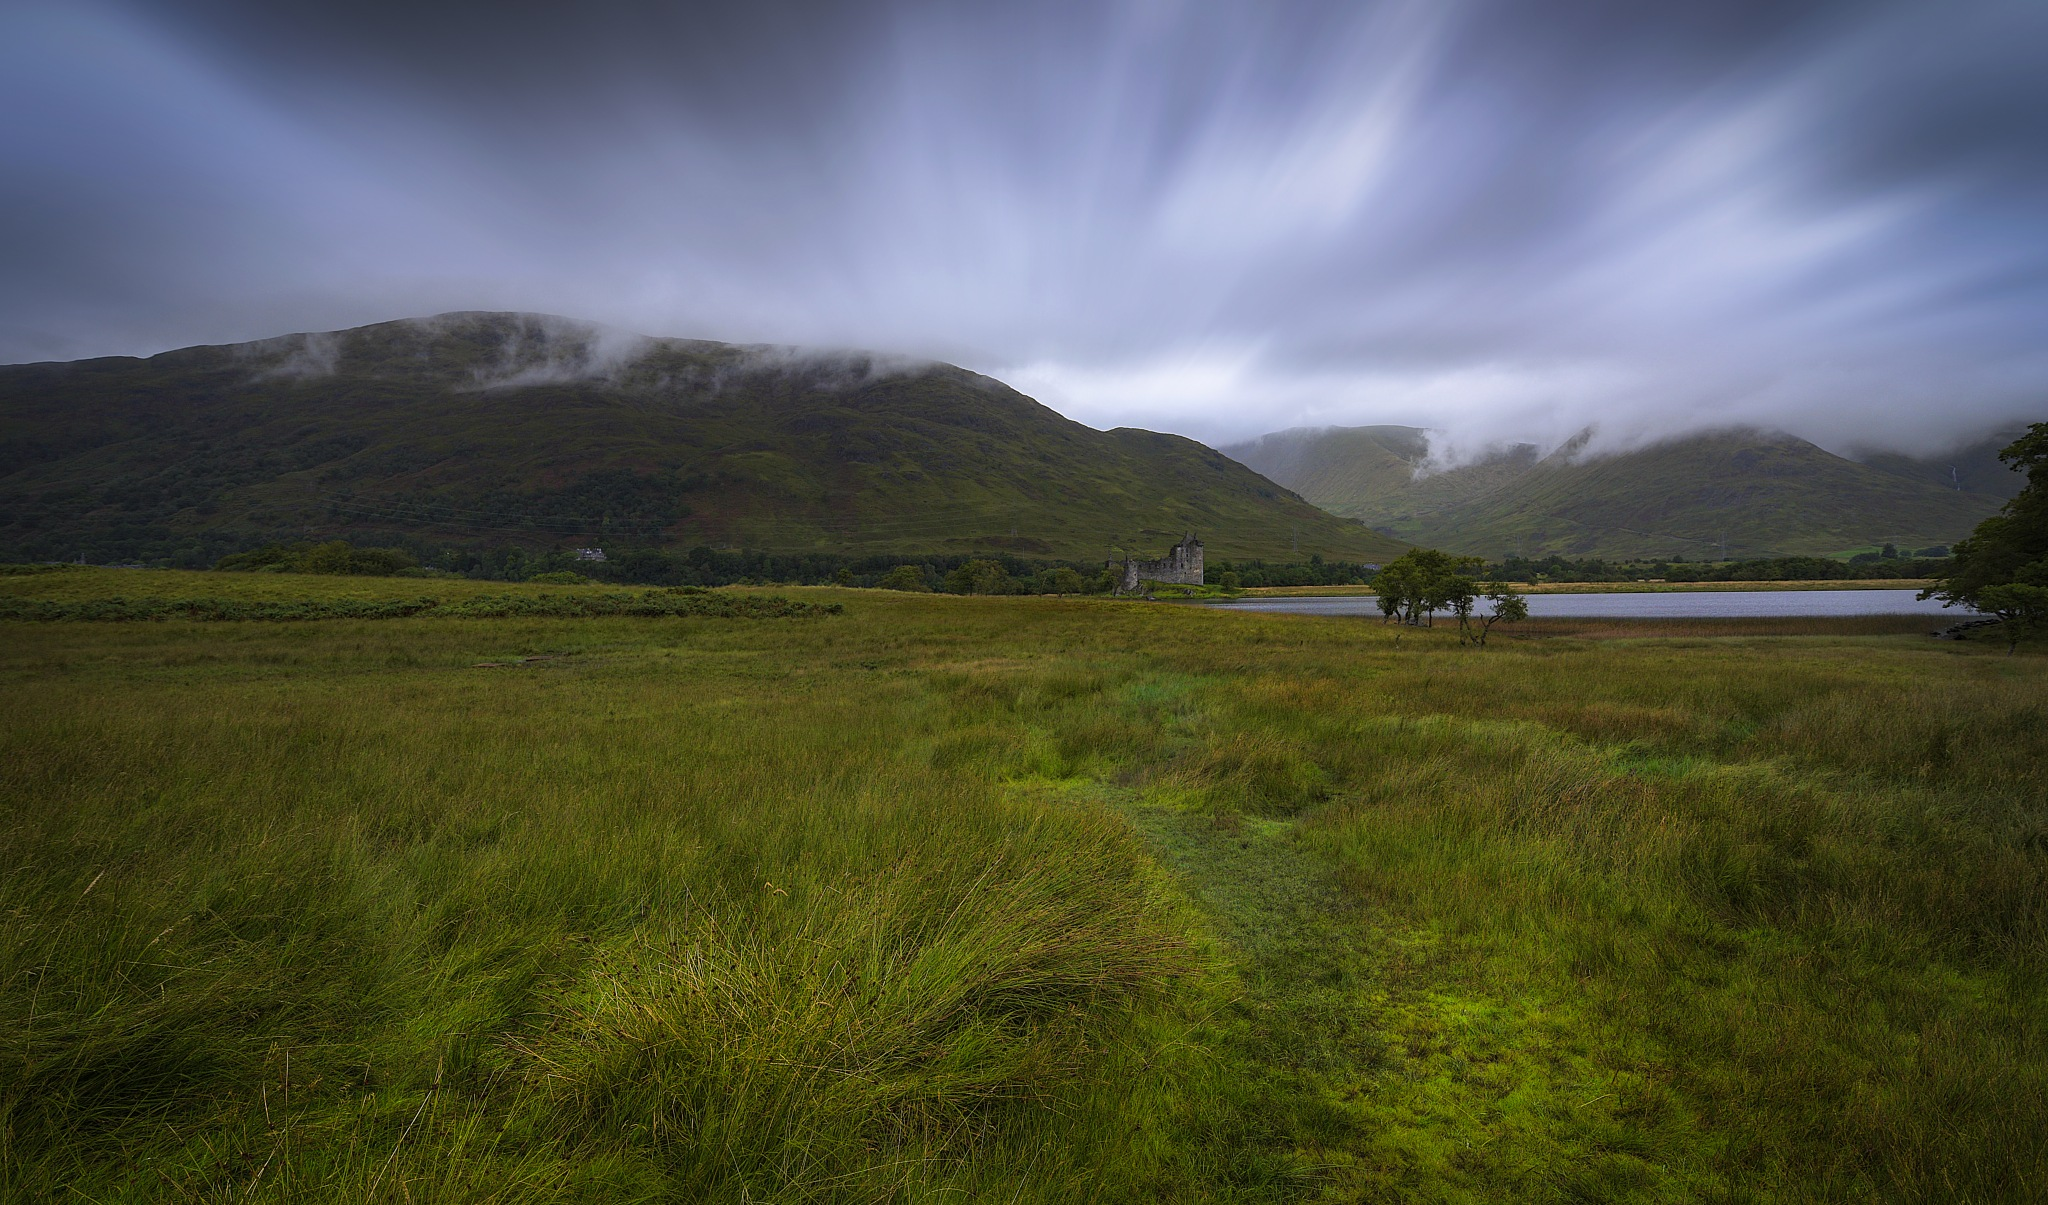 SCOTLAND'S MOUNTAINS AND HILLS by mark fisher